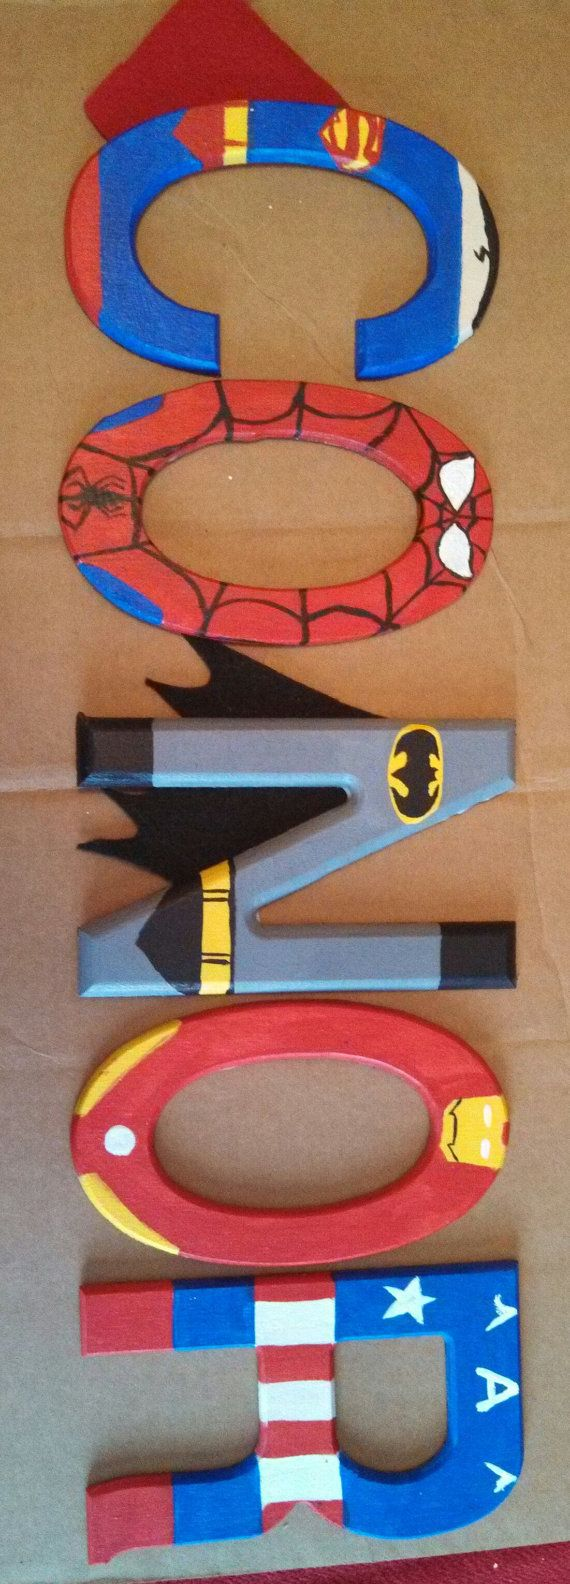 this is awesome-- Jaxsons new letters for sure!